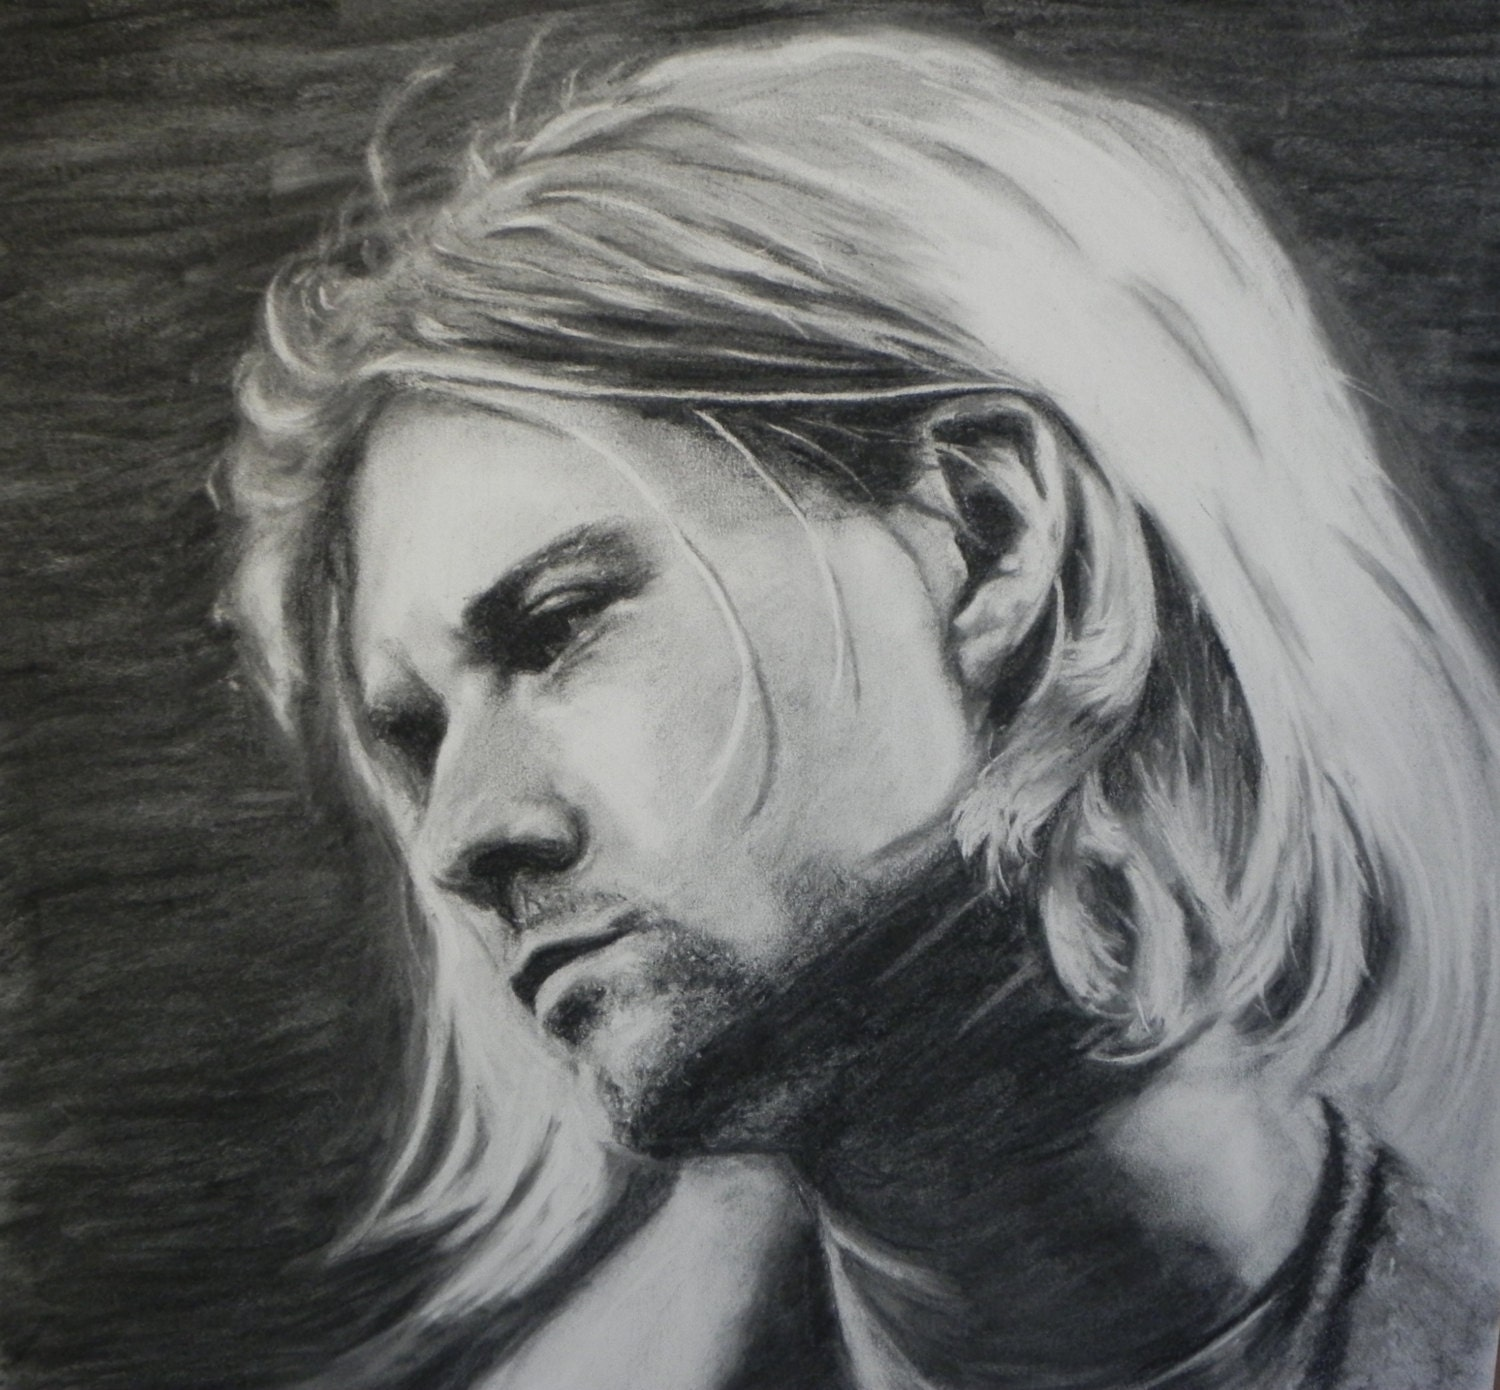 It is a picture of Ridiculous Drawing Of Kurt Cobain